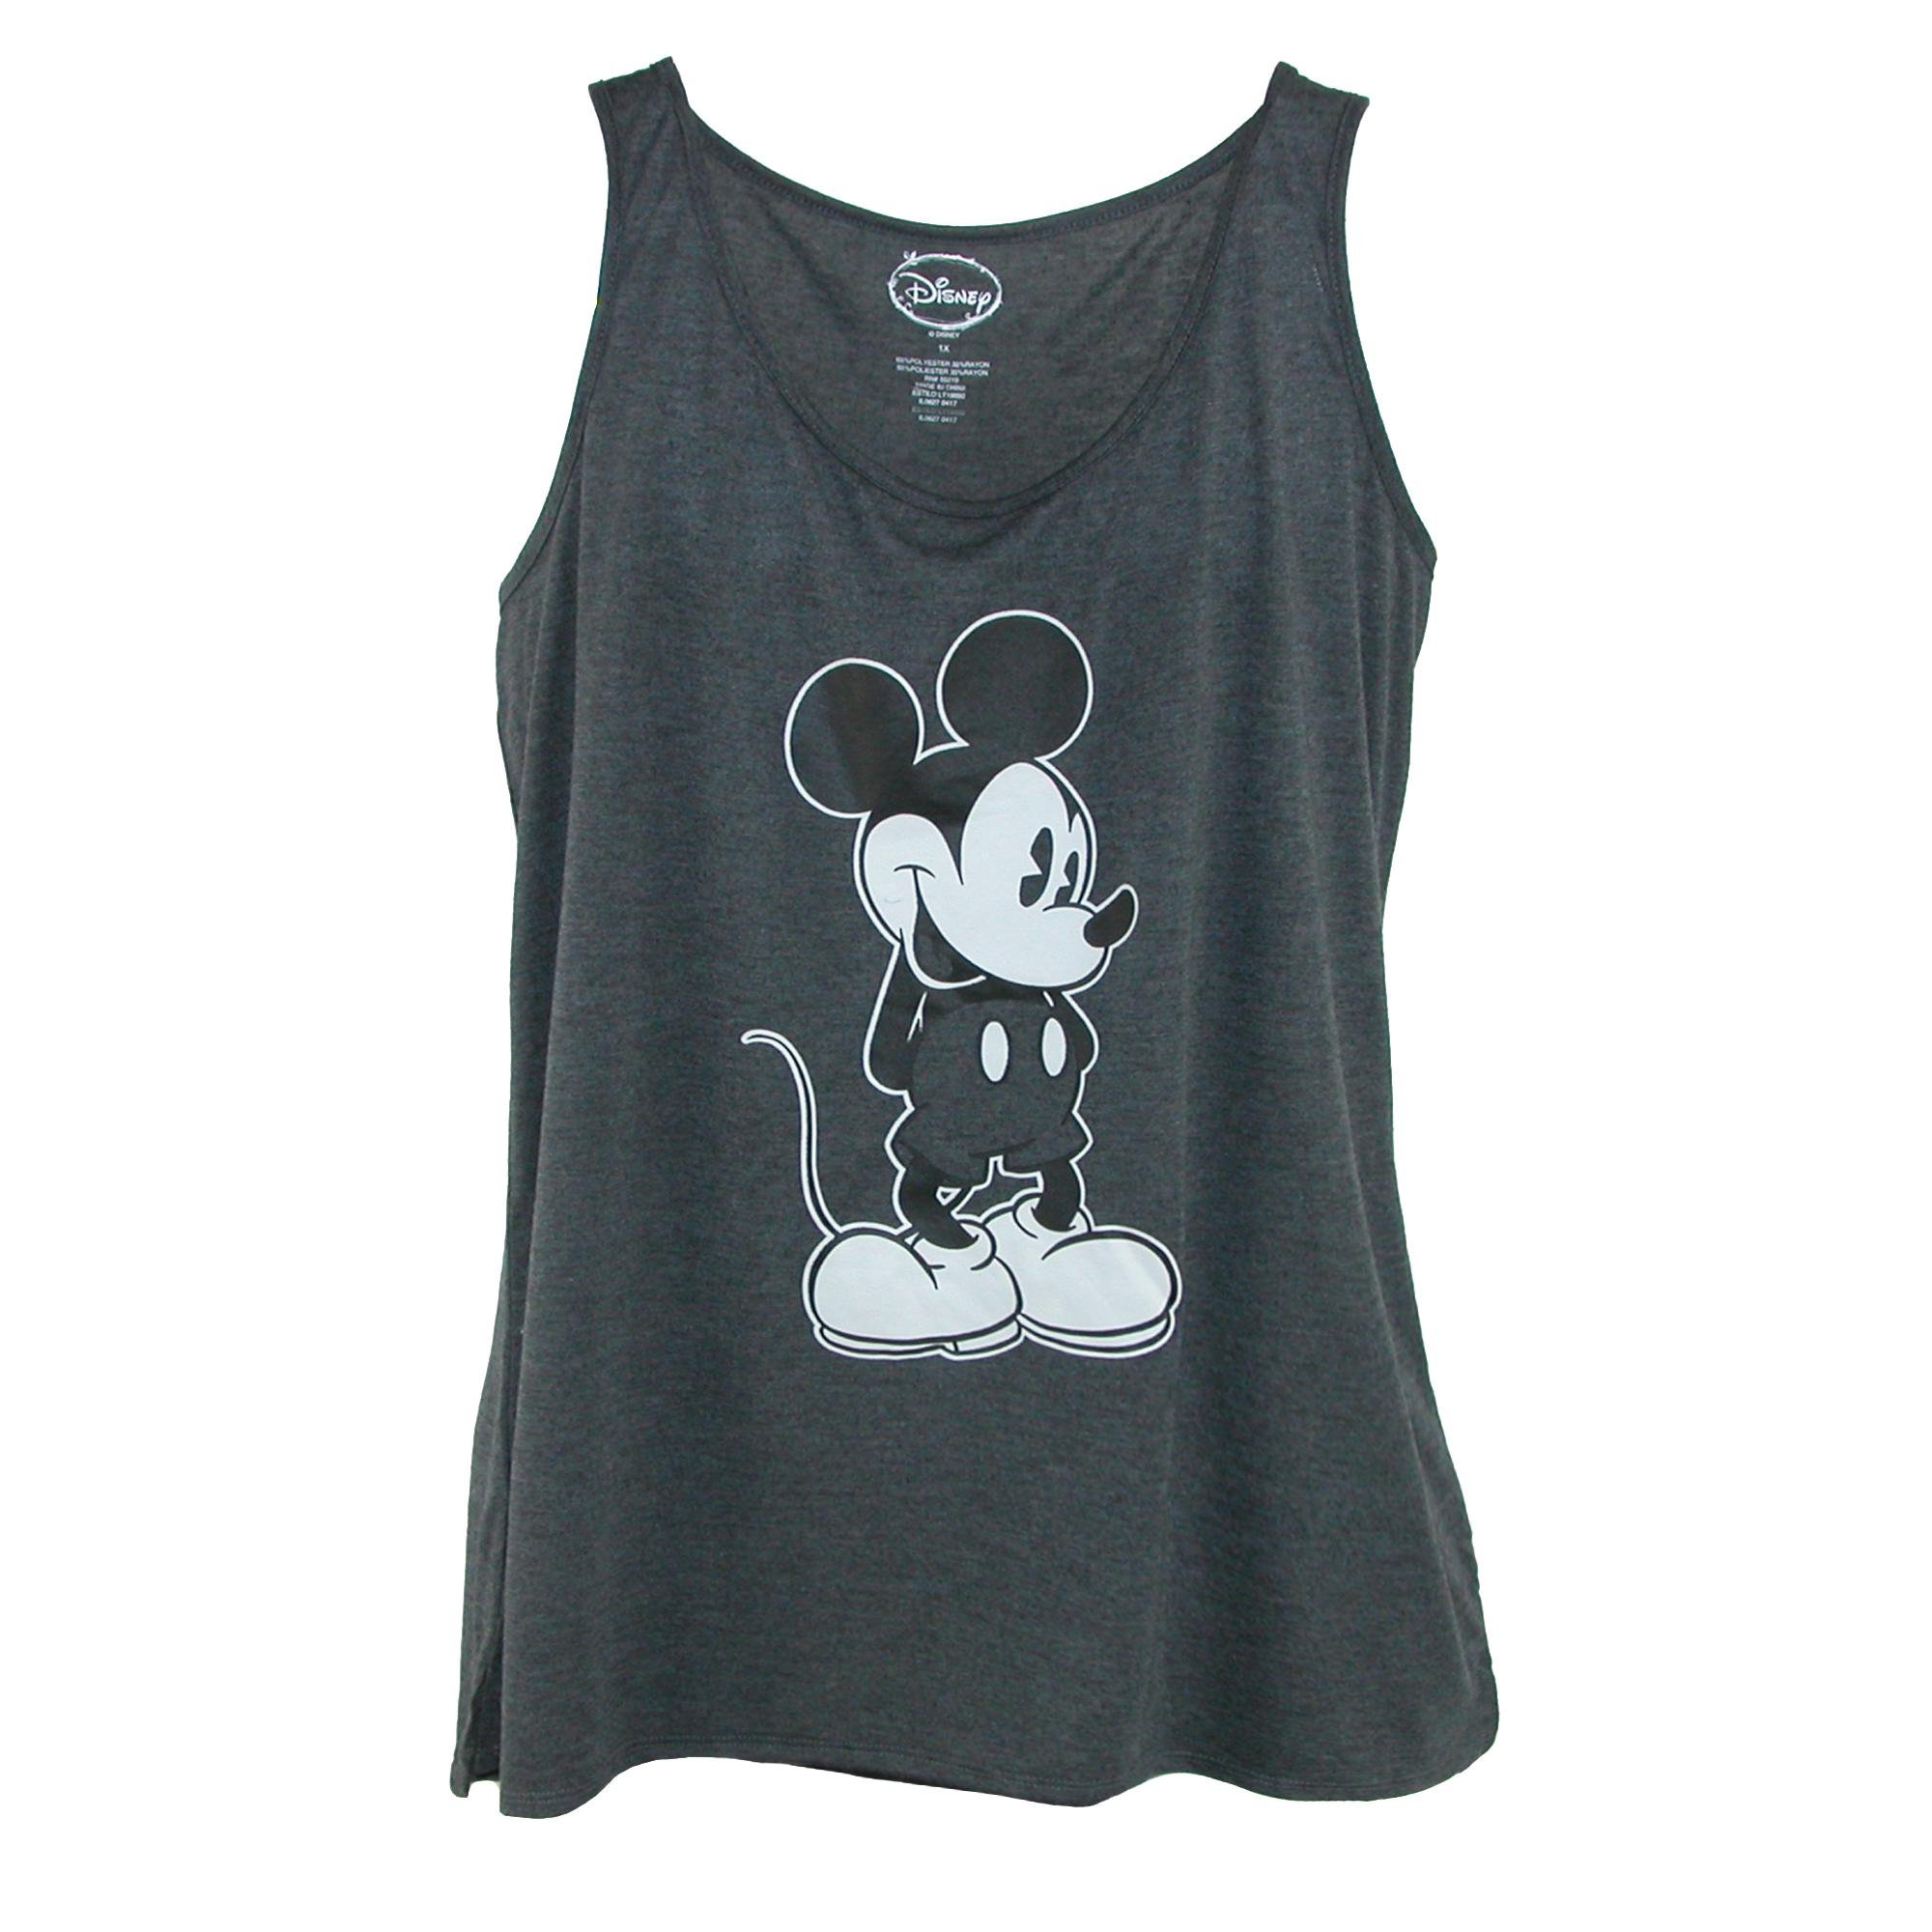 Disney Women's Plus Size Mickey Mouse Tank Top, 2XL, Grey